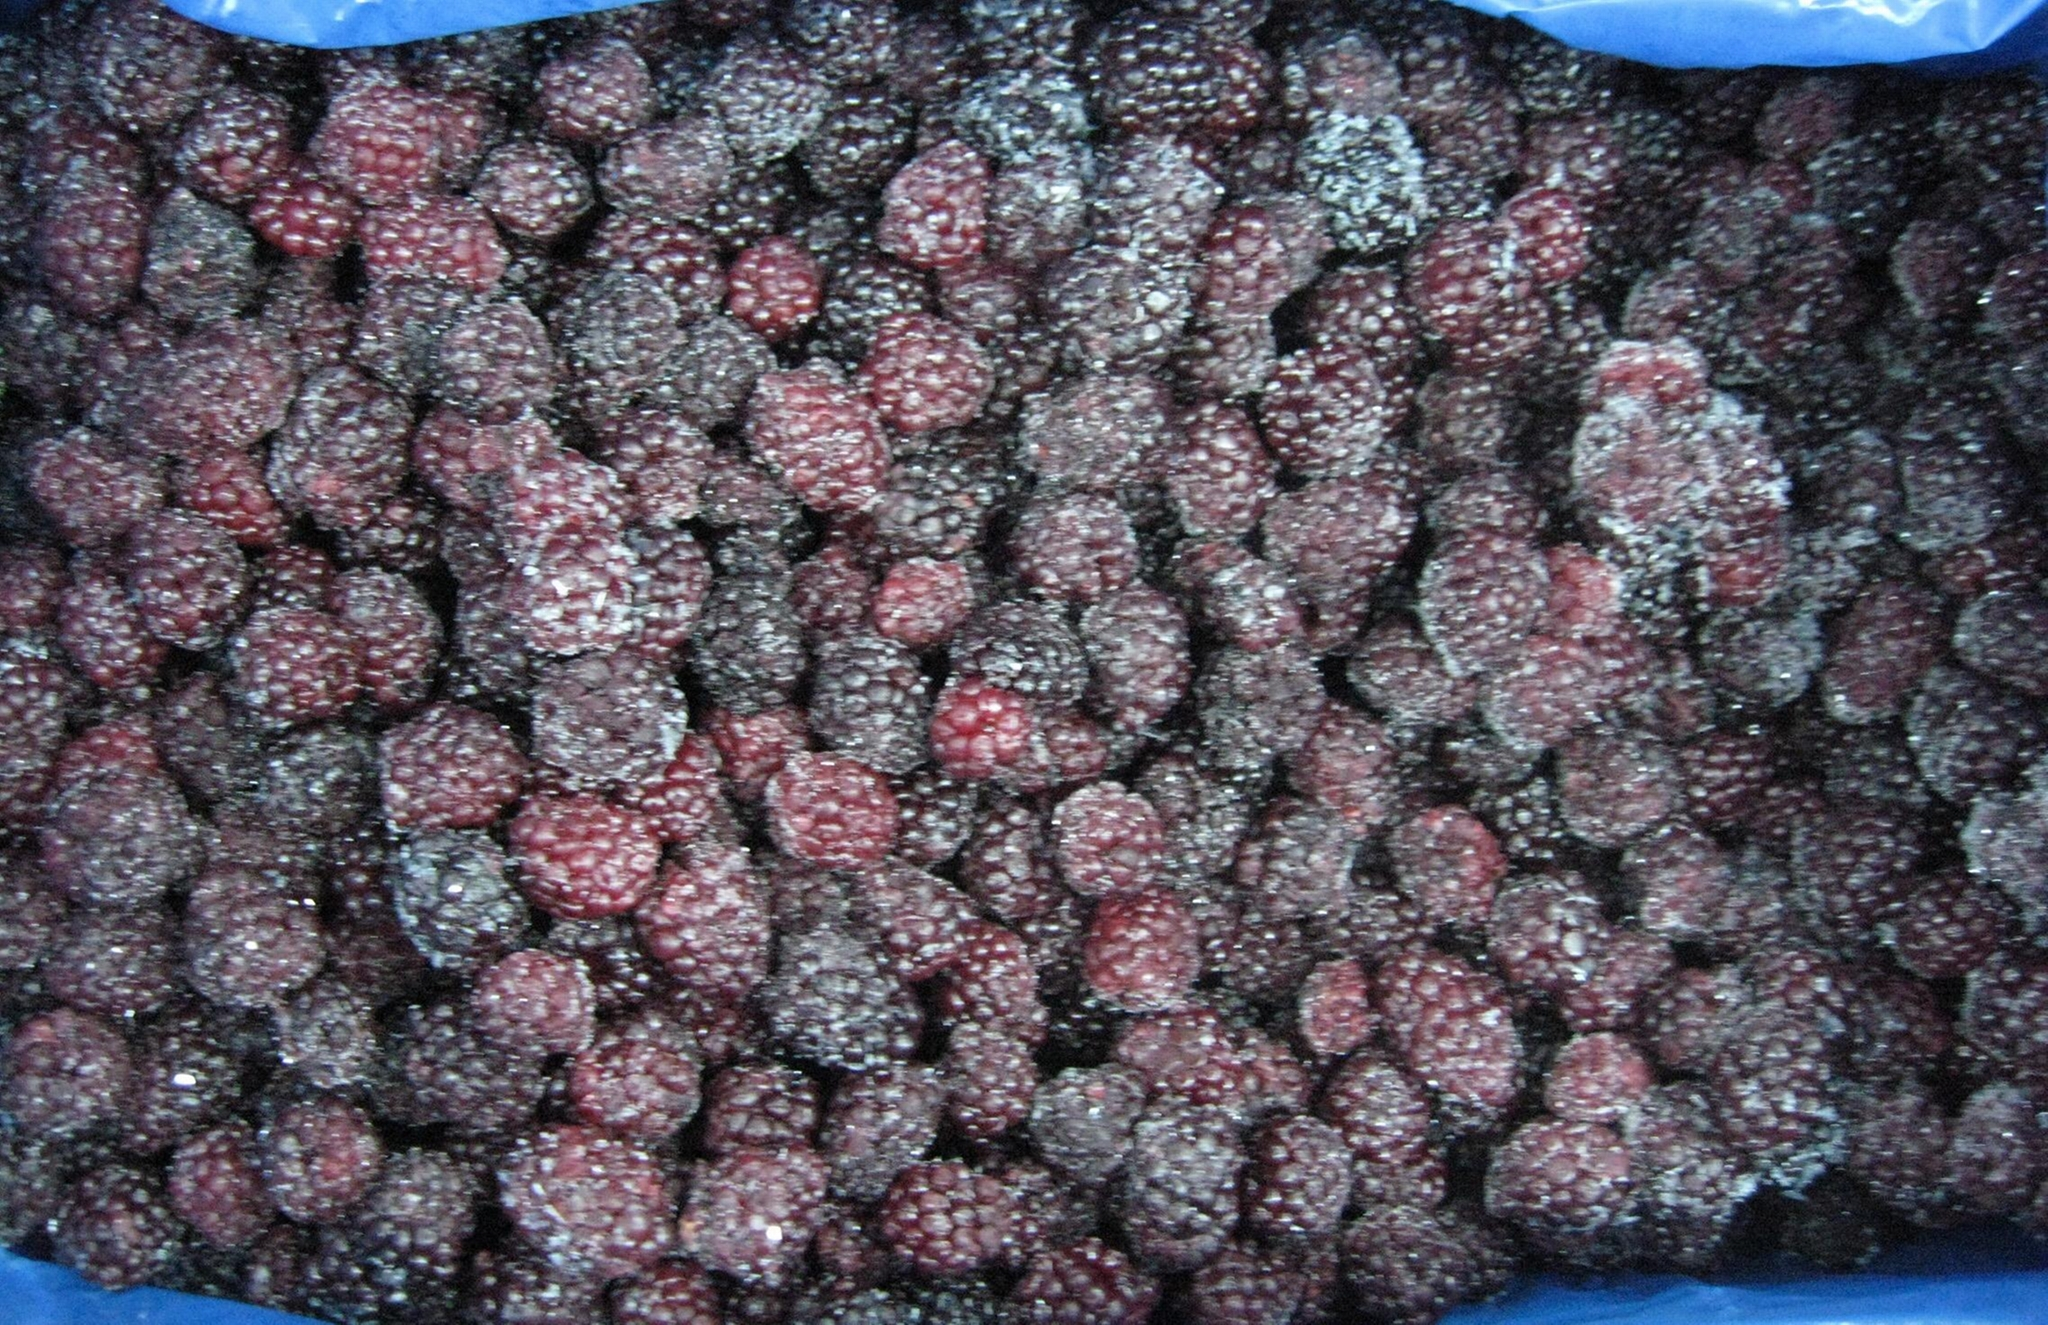 IQF Blackberries,Frozen Blackberries,cultivated 2